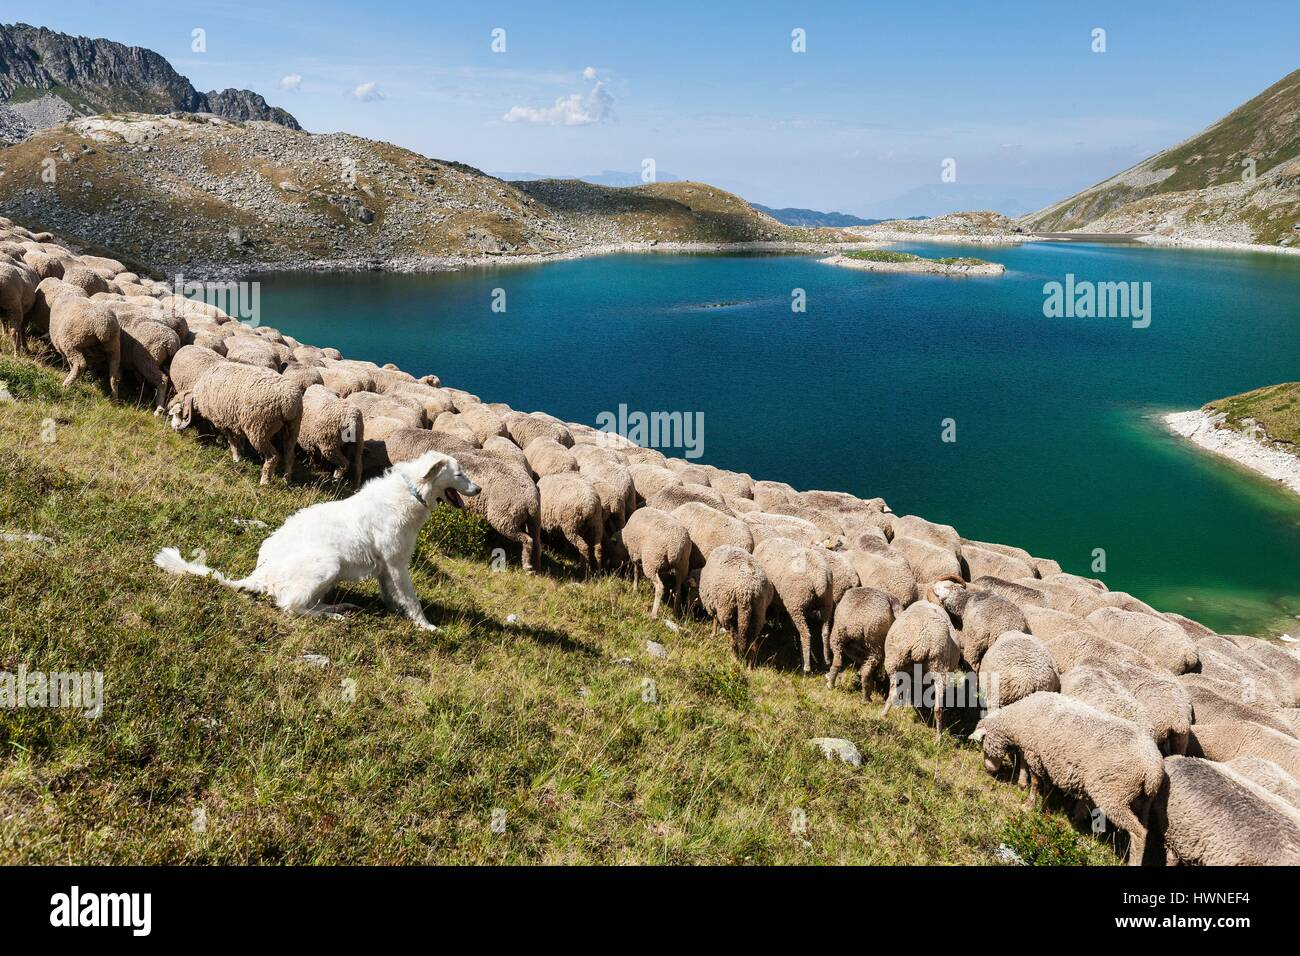 France, Isere, the massif of Belledonne, the Sept Laux, shepherd and herd of sheep - Stock Image